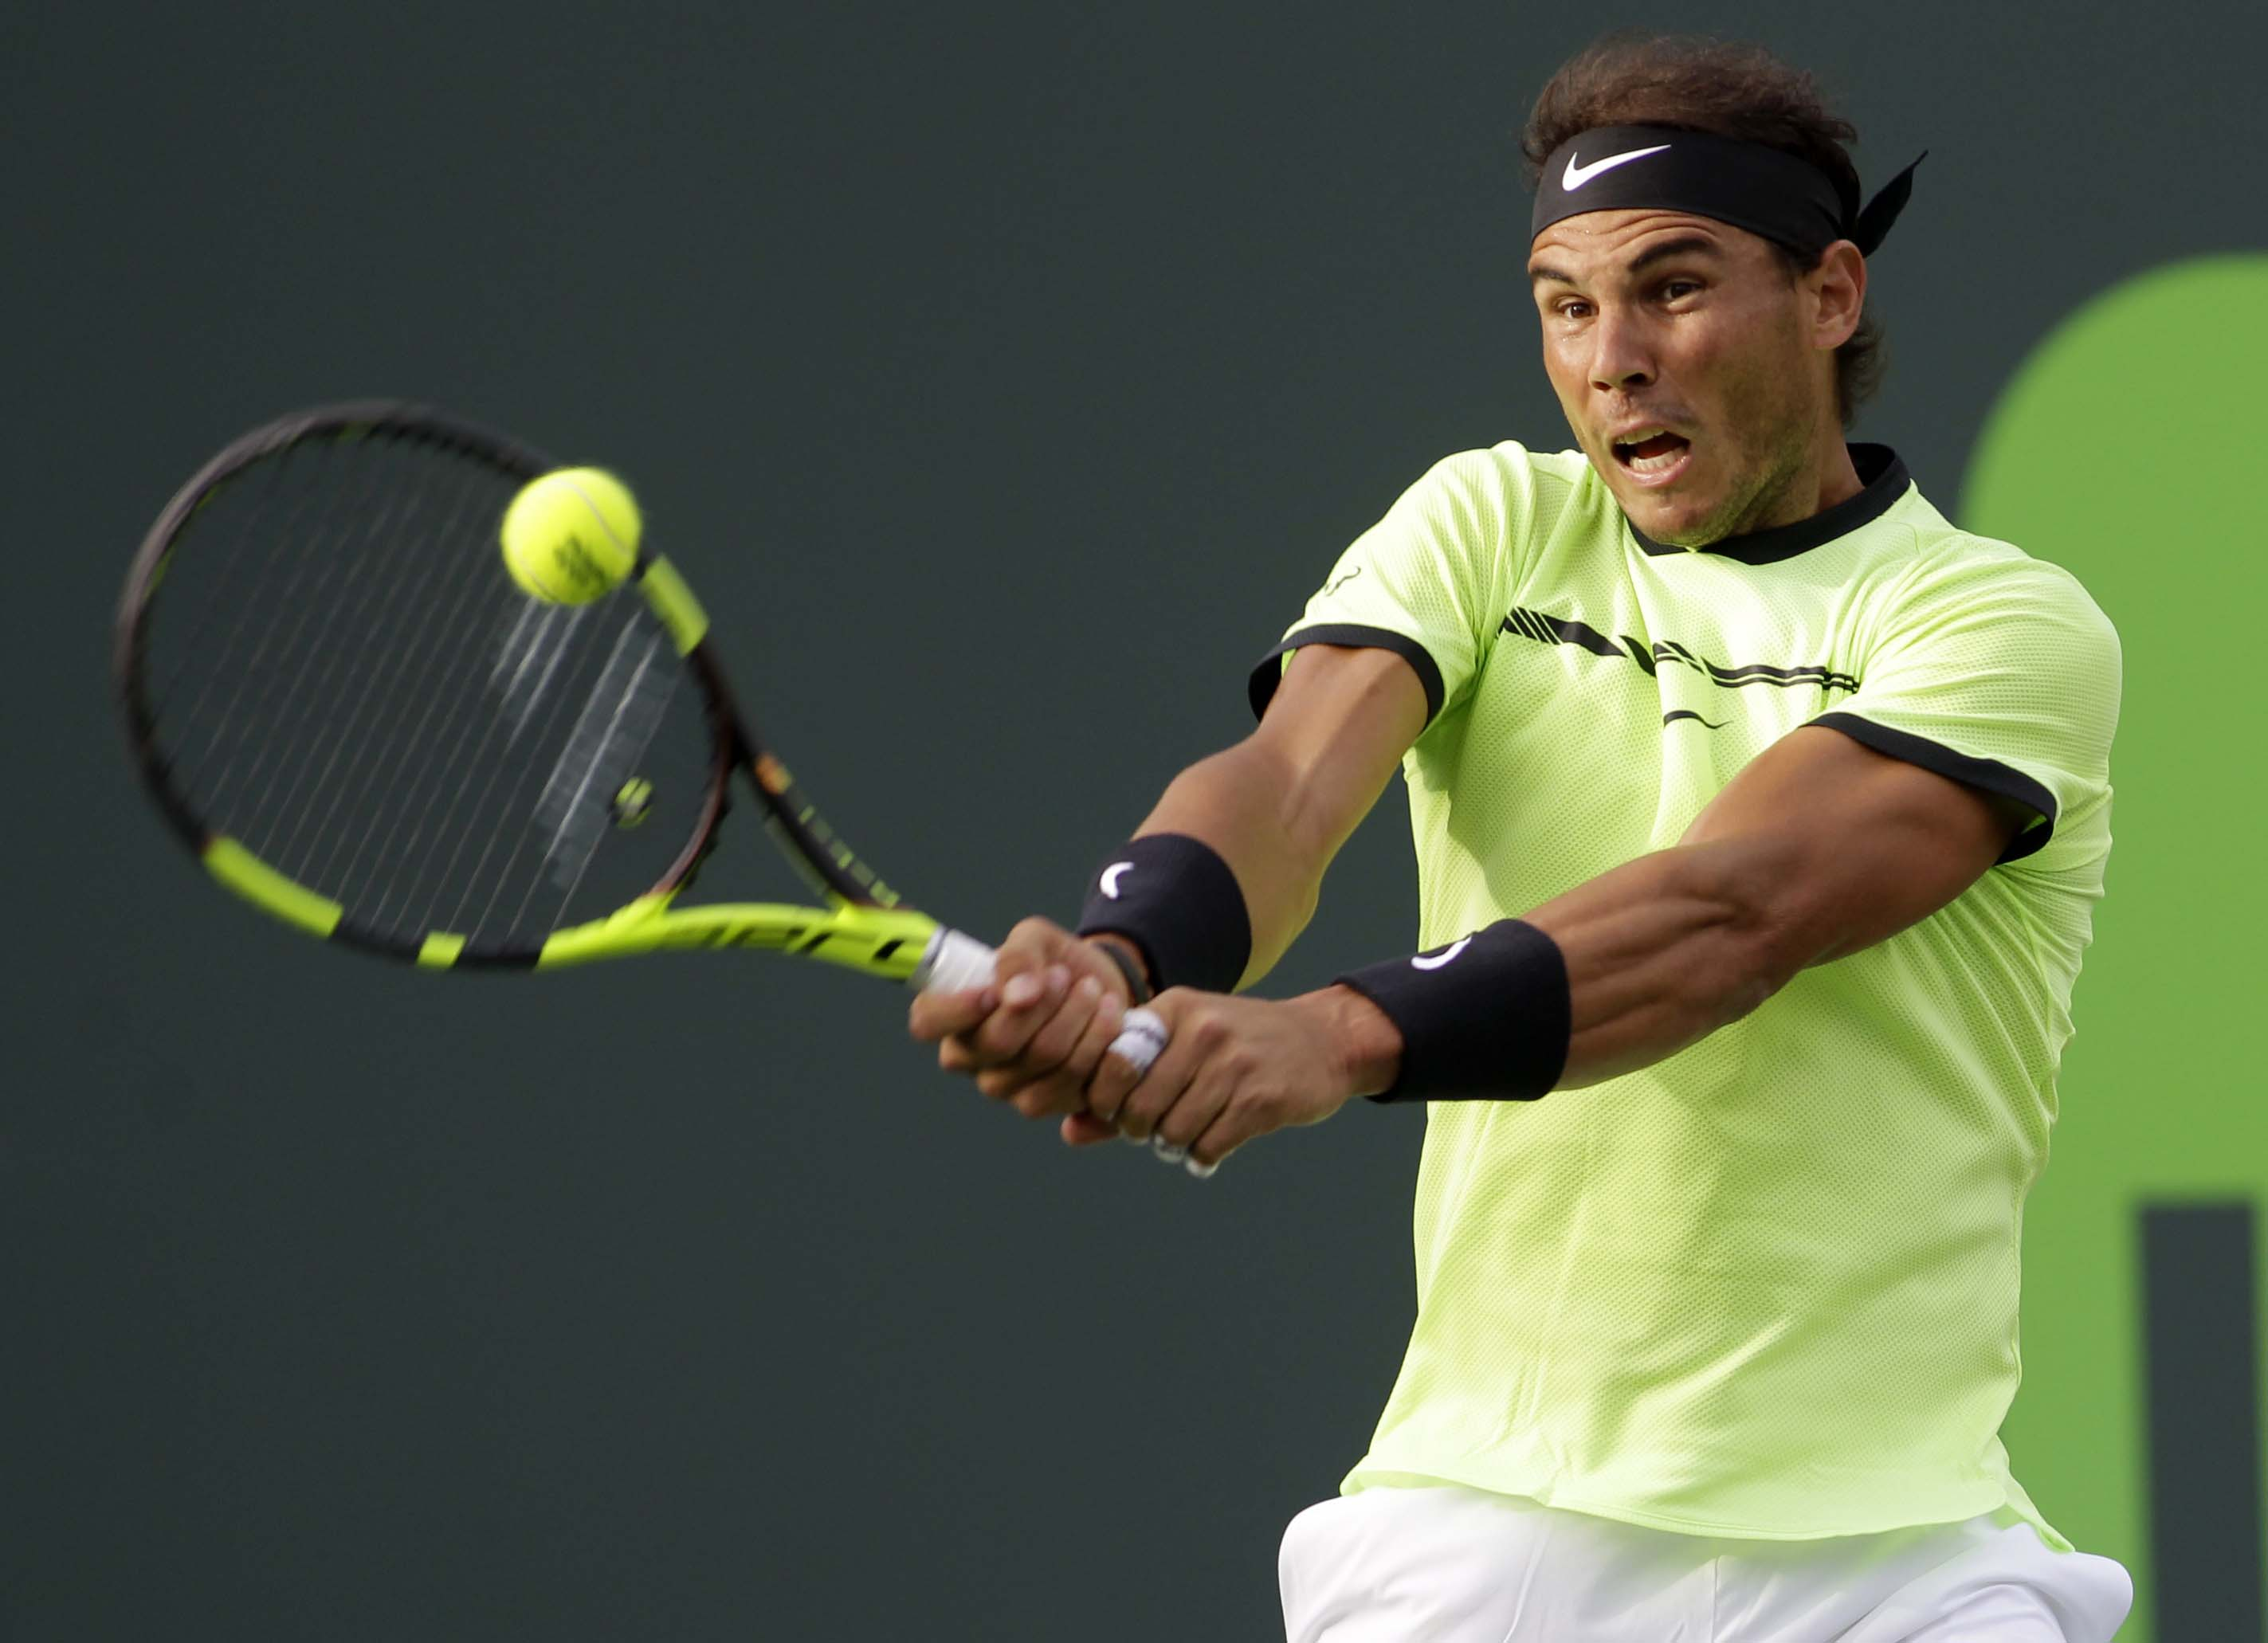 Rafael Nadal, of Spain, returns the ball to Dudi Sela,u00a0of Israel, during the Miami Open tennis tournament, in Key Biscayne, Florida, on Friday, March 24, 2017. Photo: AP